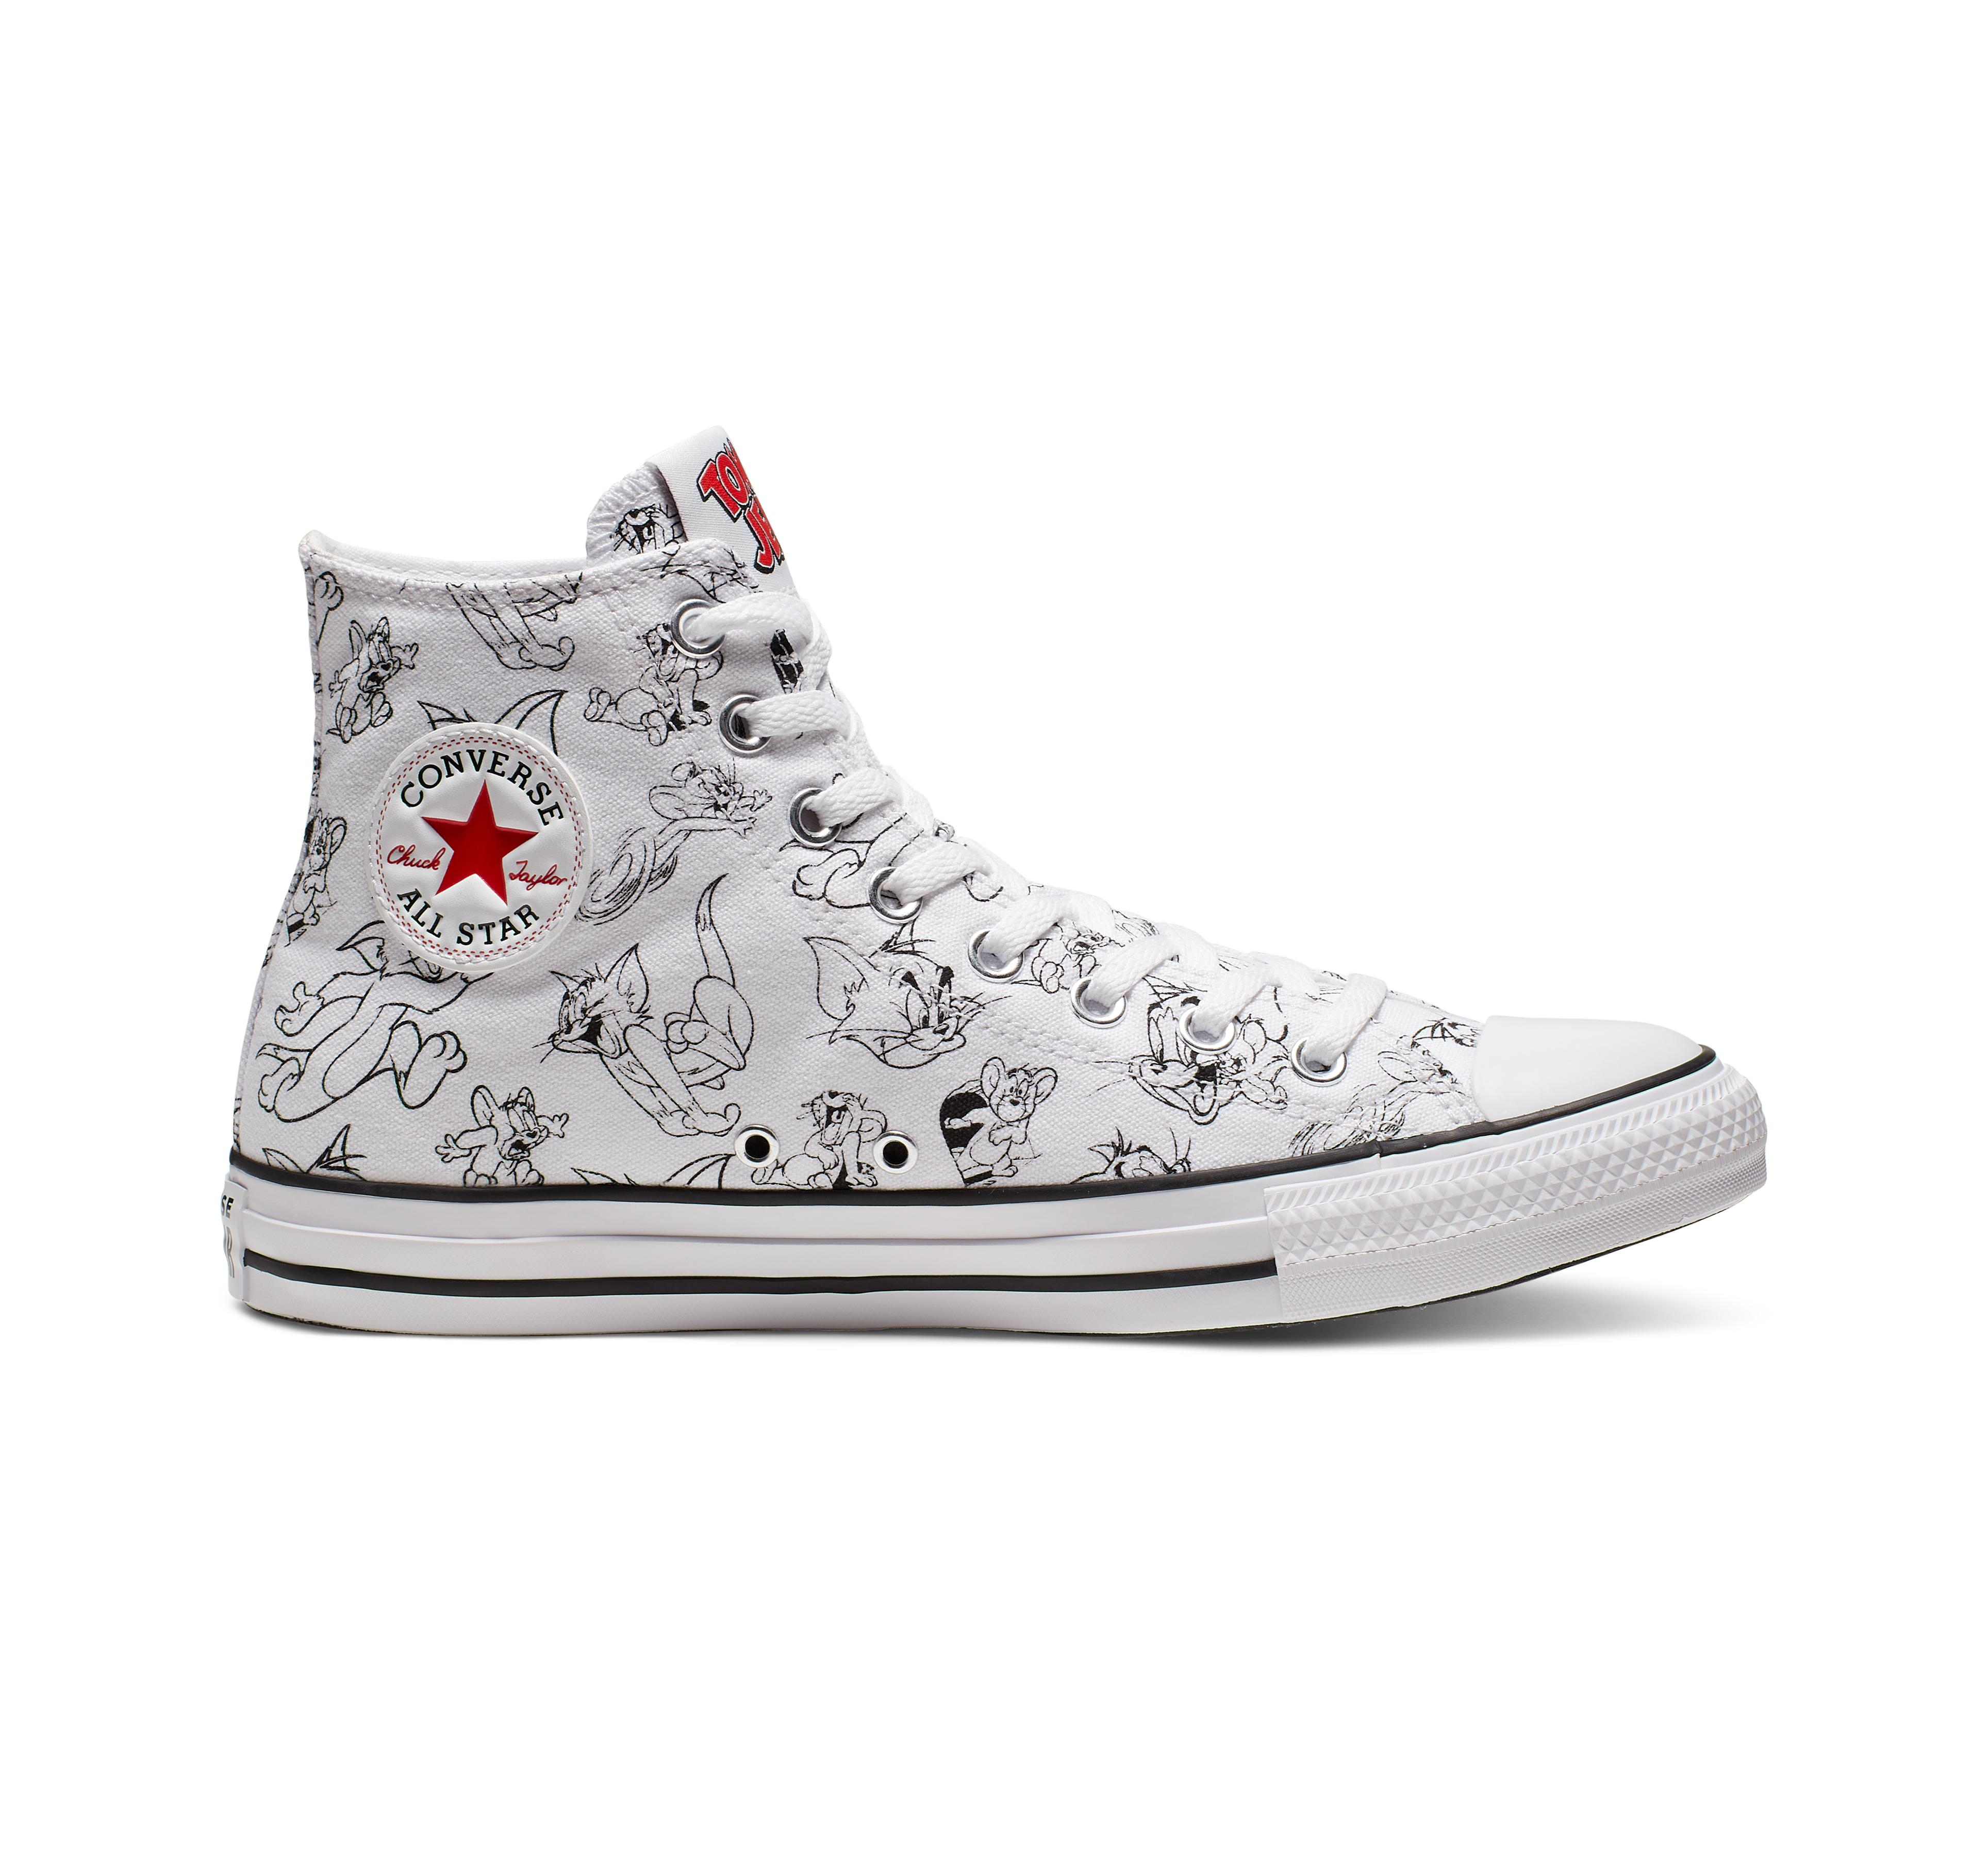 grieta Samuel lento  Converse Tom And Jerry Chuck Taylor All Star High Top in White - Lyst